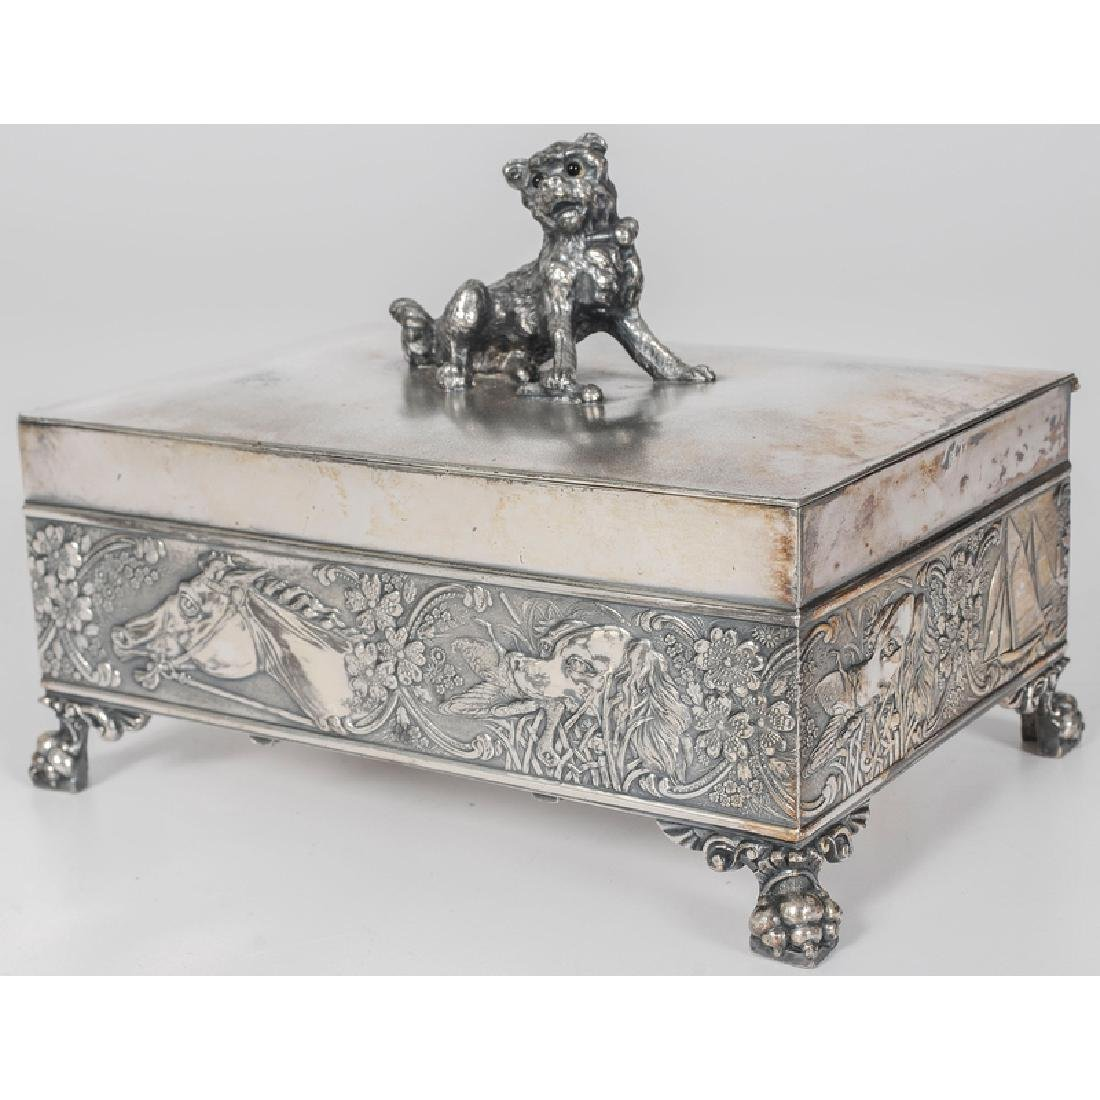 Tufts Silverplated Dresser Box with Dog Motifs - 2